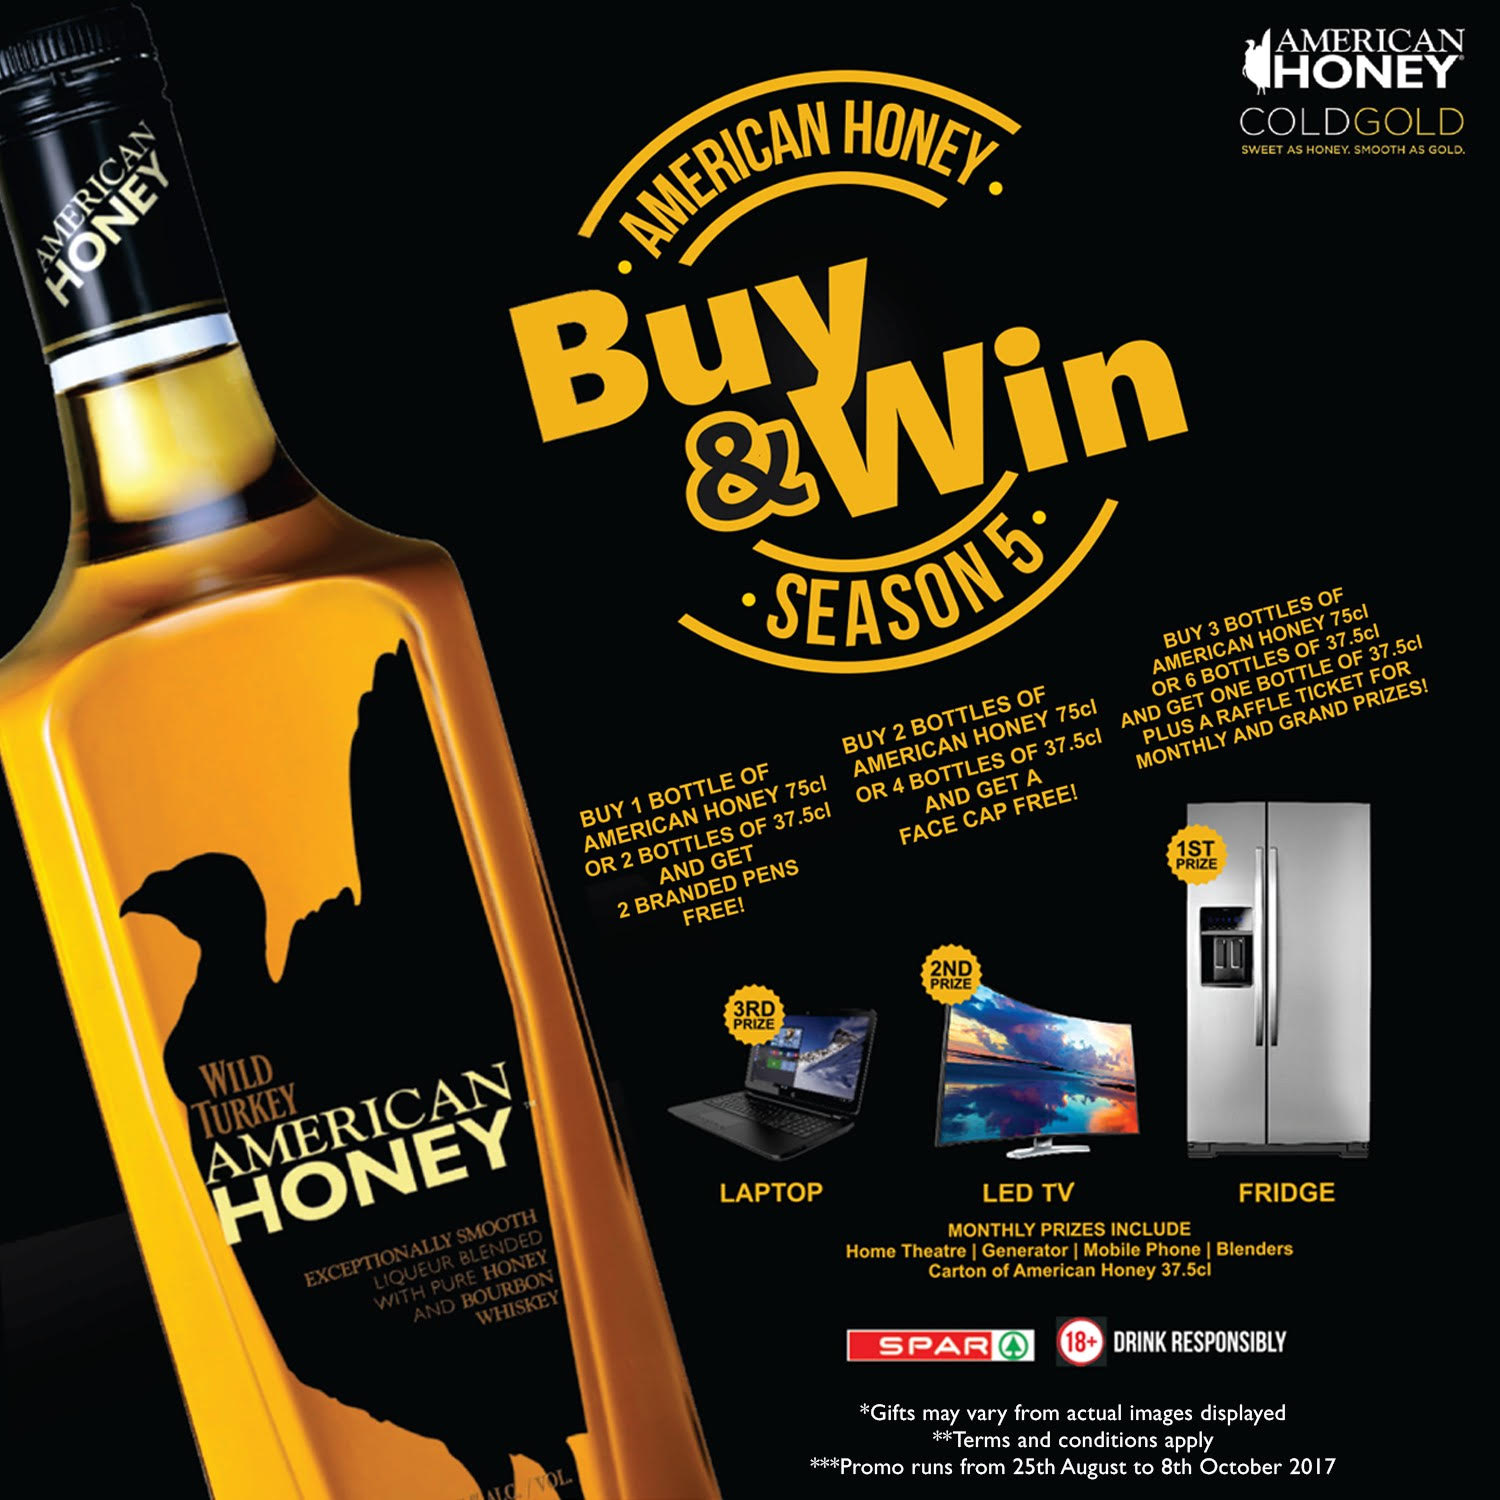 American Honey Buy & Win Promo! Win a brand new laptop, LED TV and other fantastic prizes